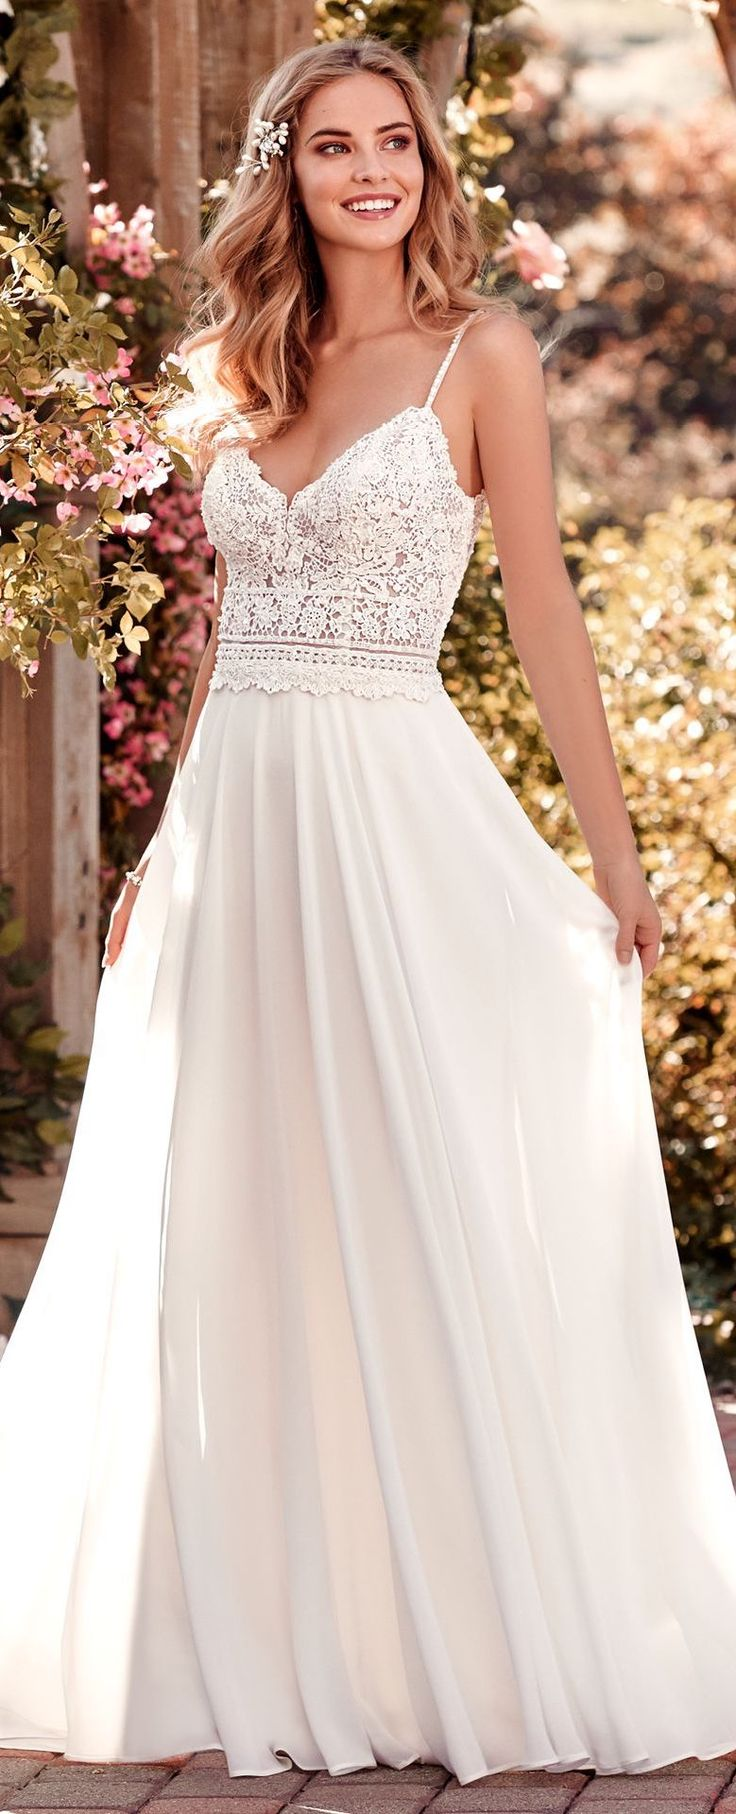 Wedding dress by Rebecca Ingram from Maggie Sottero. Chiffon boho-inspired wedding dress features a sheer bodice accented in beaded lace atop an Aria Chiffon skirt. A V-neck, V-back, and beaded spaghetti straps complete this sheath gown. Finished with crystal buttons and zipper closure. #weddingdress #weddingdresses #bridalgown #bridal #bellethemagazine #rebeccaingram #rebeccabride